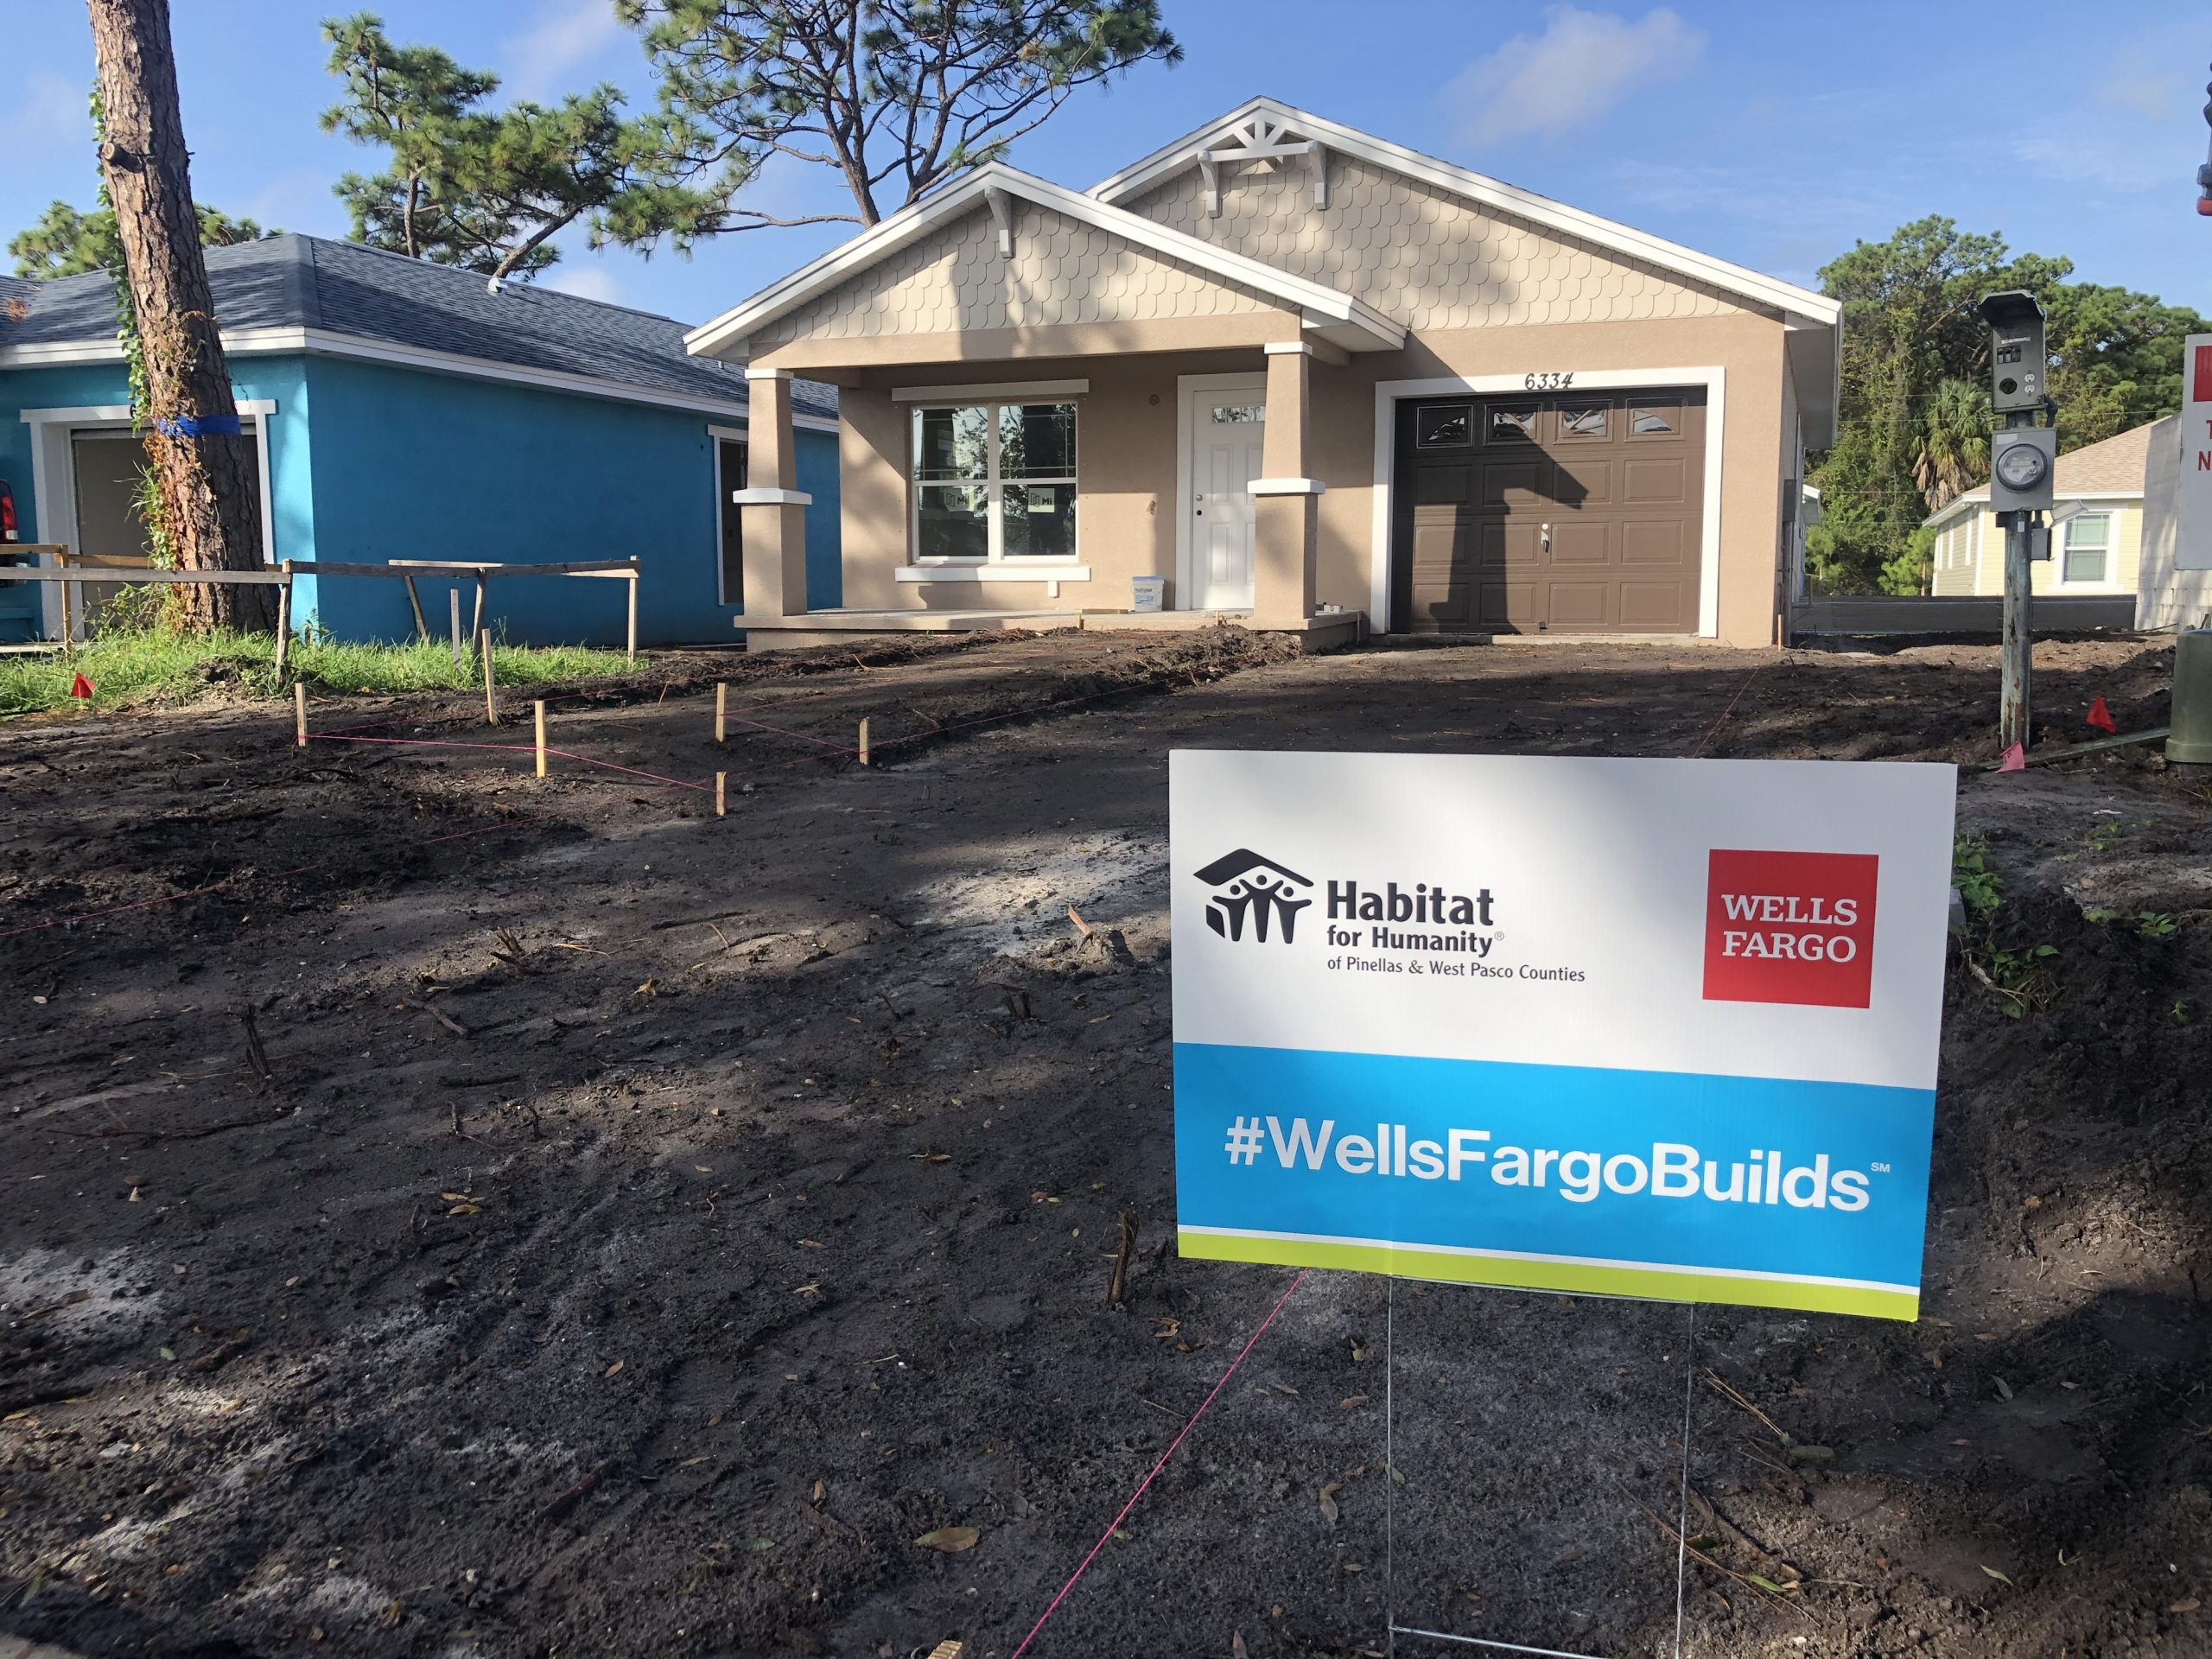 Habitat for Humanity of Pinellas and West Pasco and Wells Fargo team in Pinellas and across the country to help build affordable housing